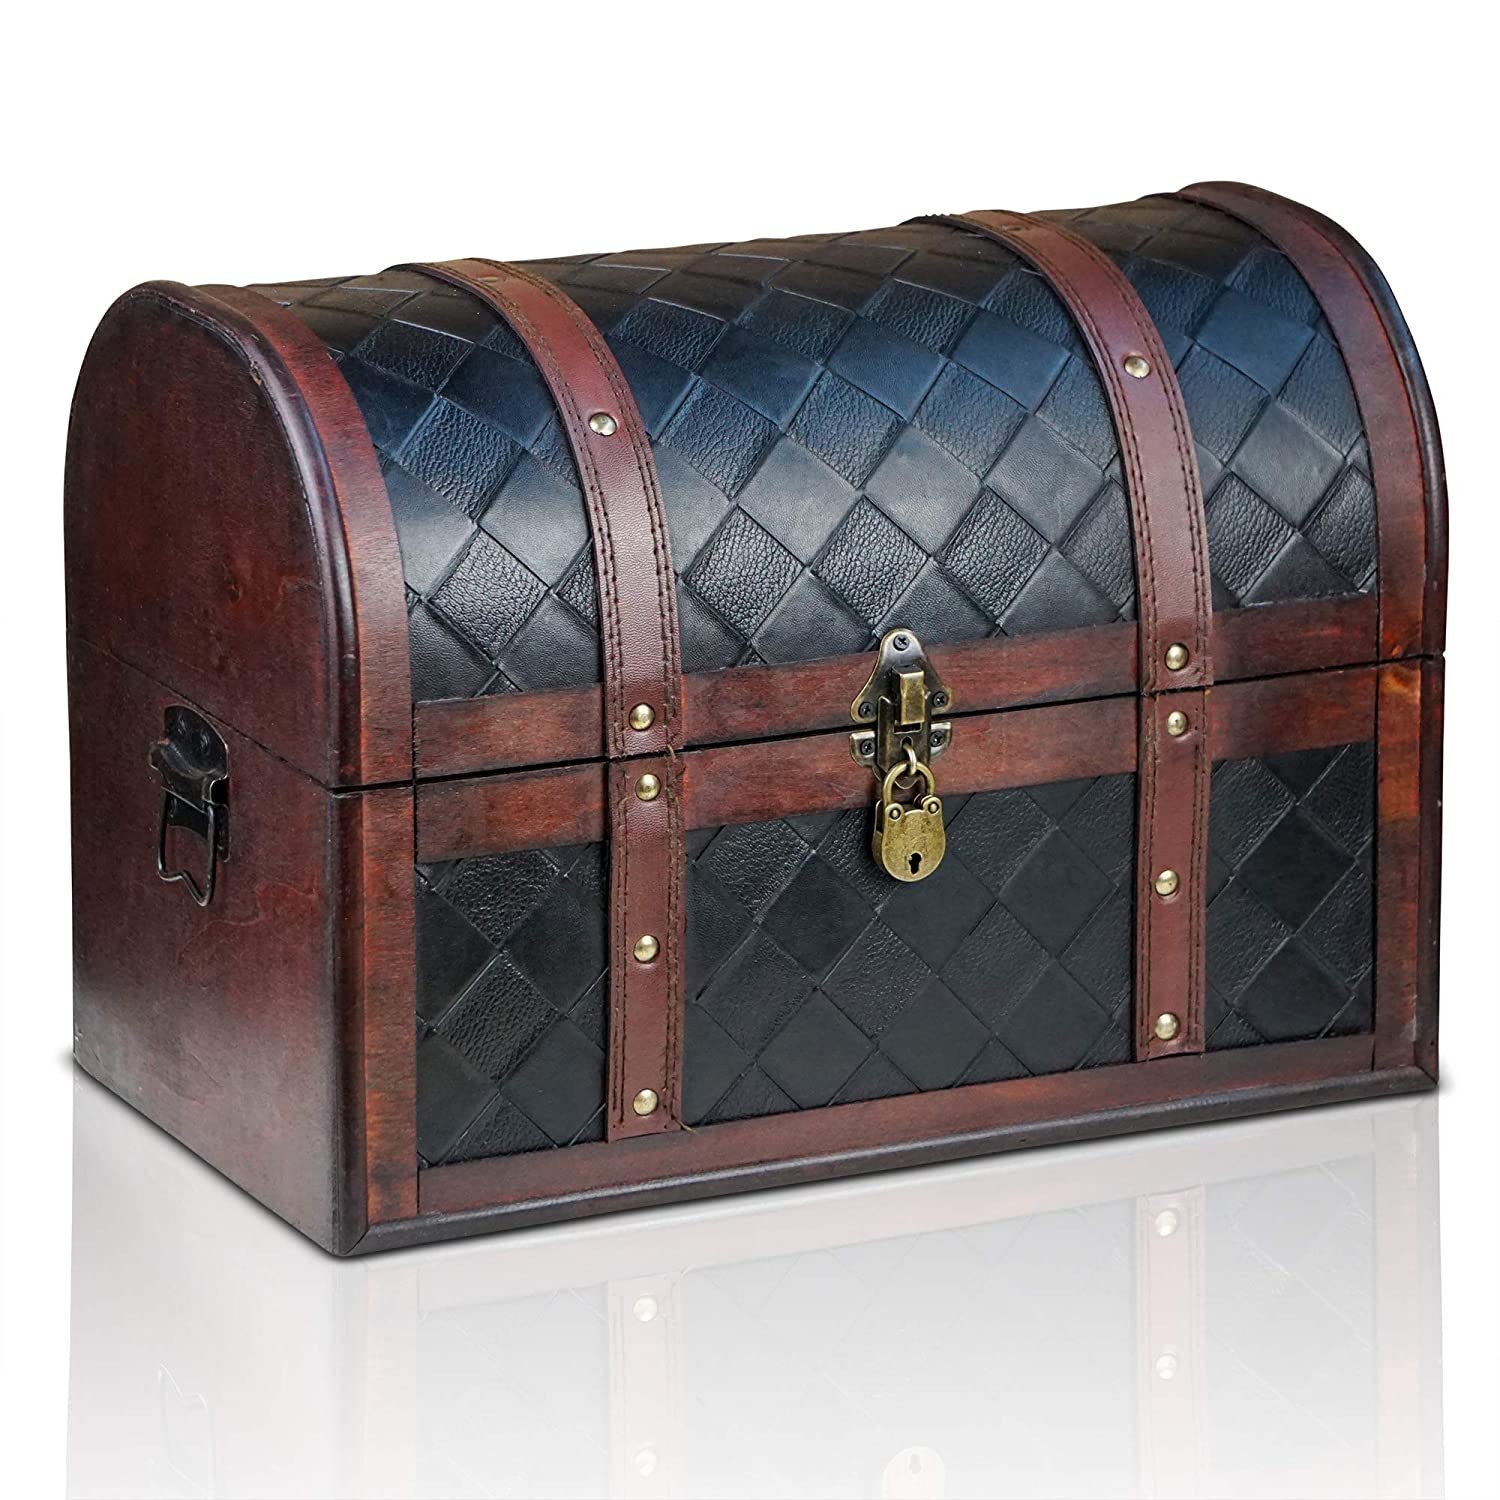 Brynnberg wooden pirate treasure chest Watson 38x23x27cm decorative storage box - Vintage decoration handmade - with padlock lockable with key